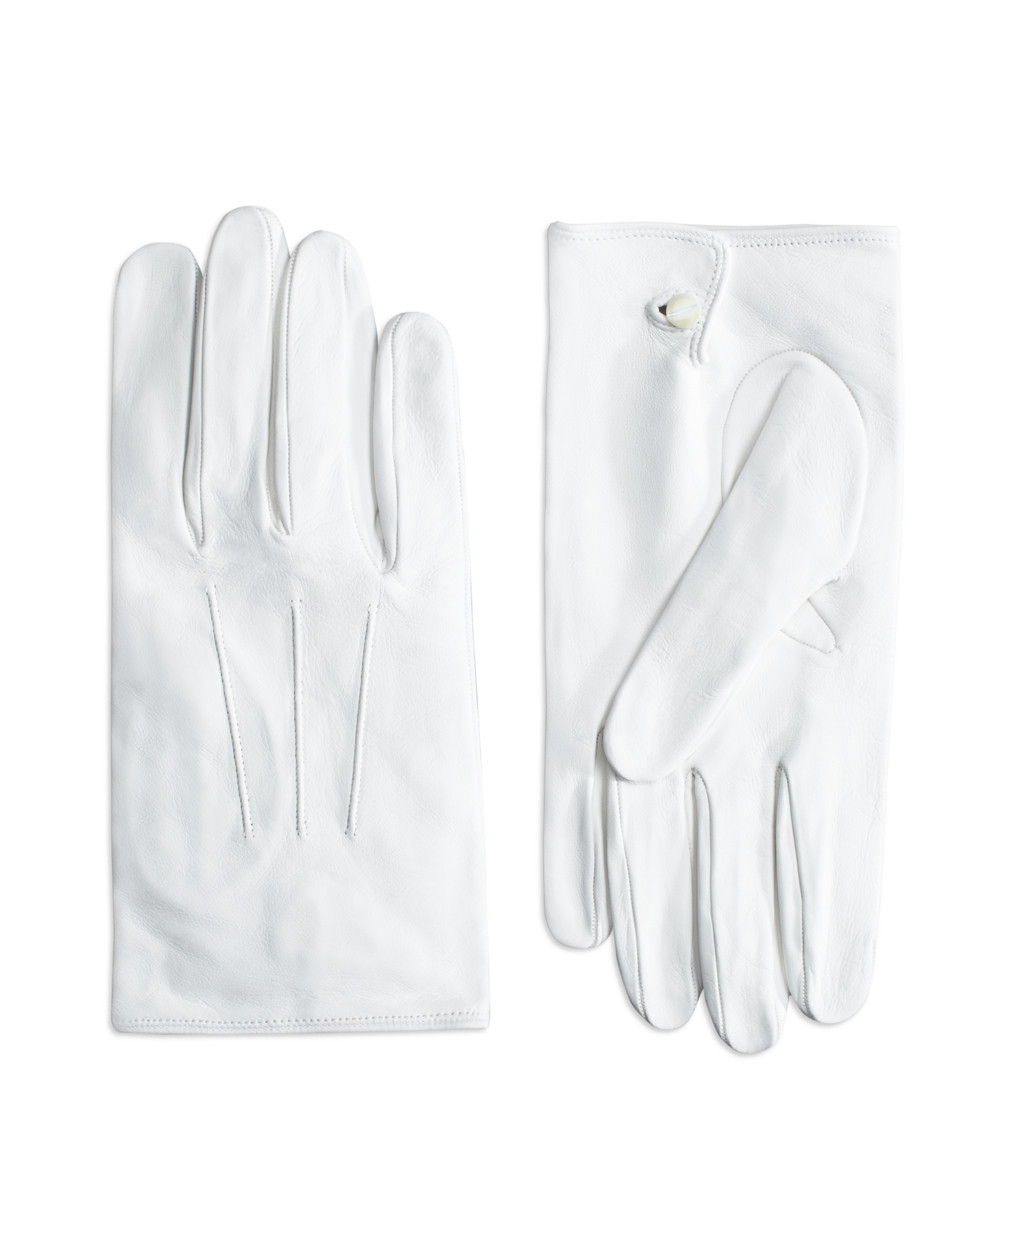 Edwardian Titanic Mens Formal Suit Guide Brooks Brothers Mens White Formal Gloves $148.00 AT vintagedancer.com